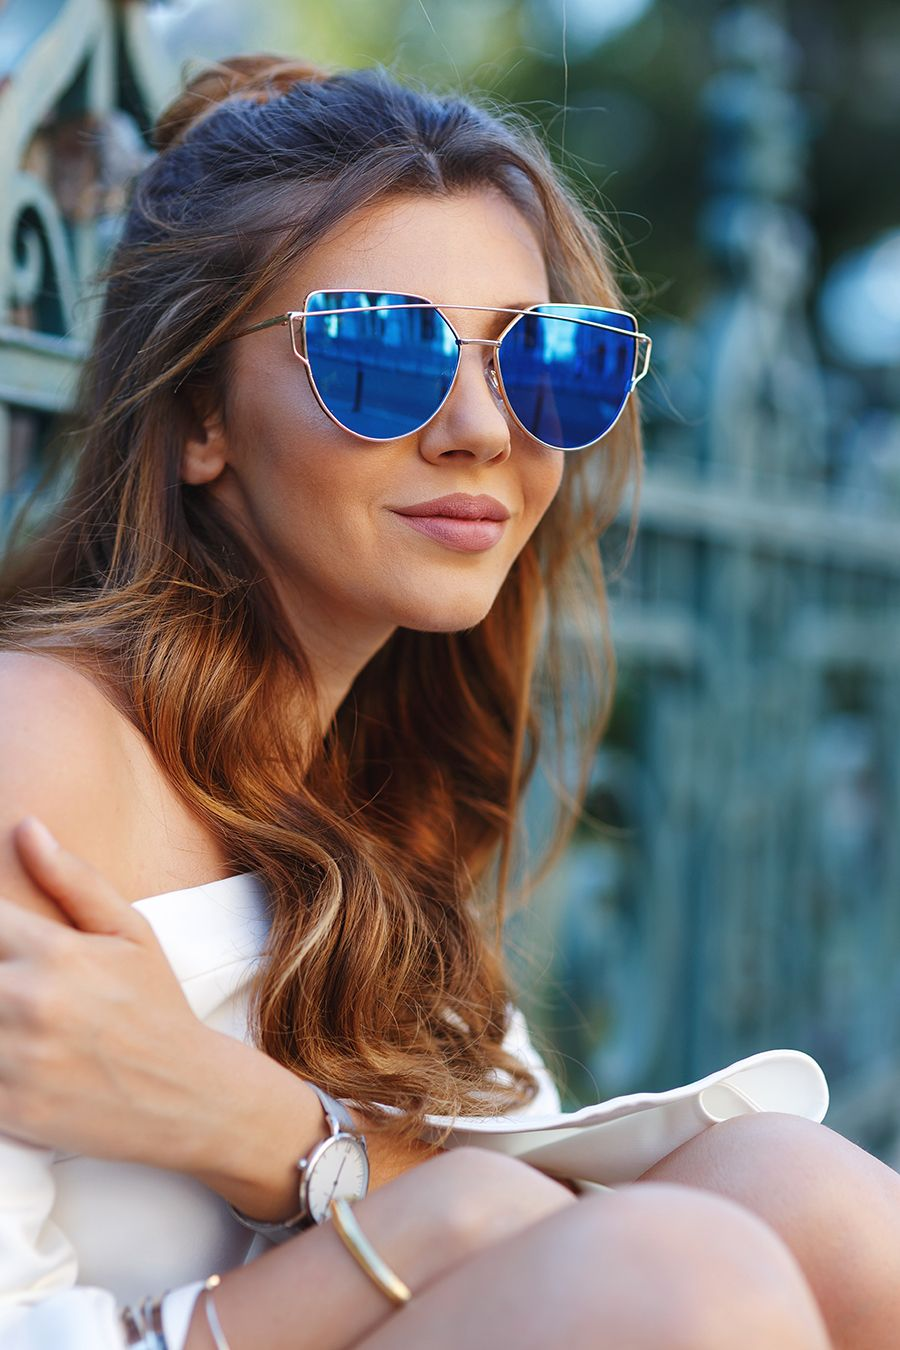 6482476d2c The Mysterious Girl  OVERSIZE THIN CROSS BROW MIRRORED FLAT LENS SUNGLASSES  A545